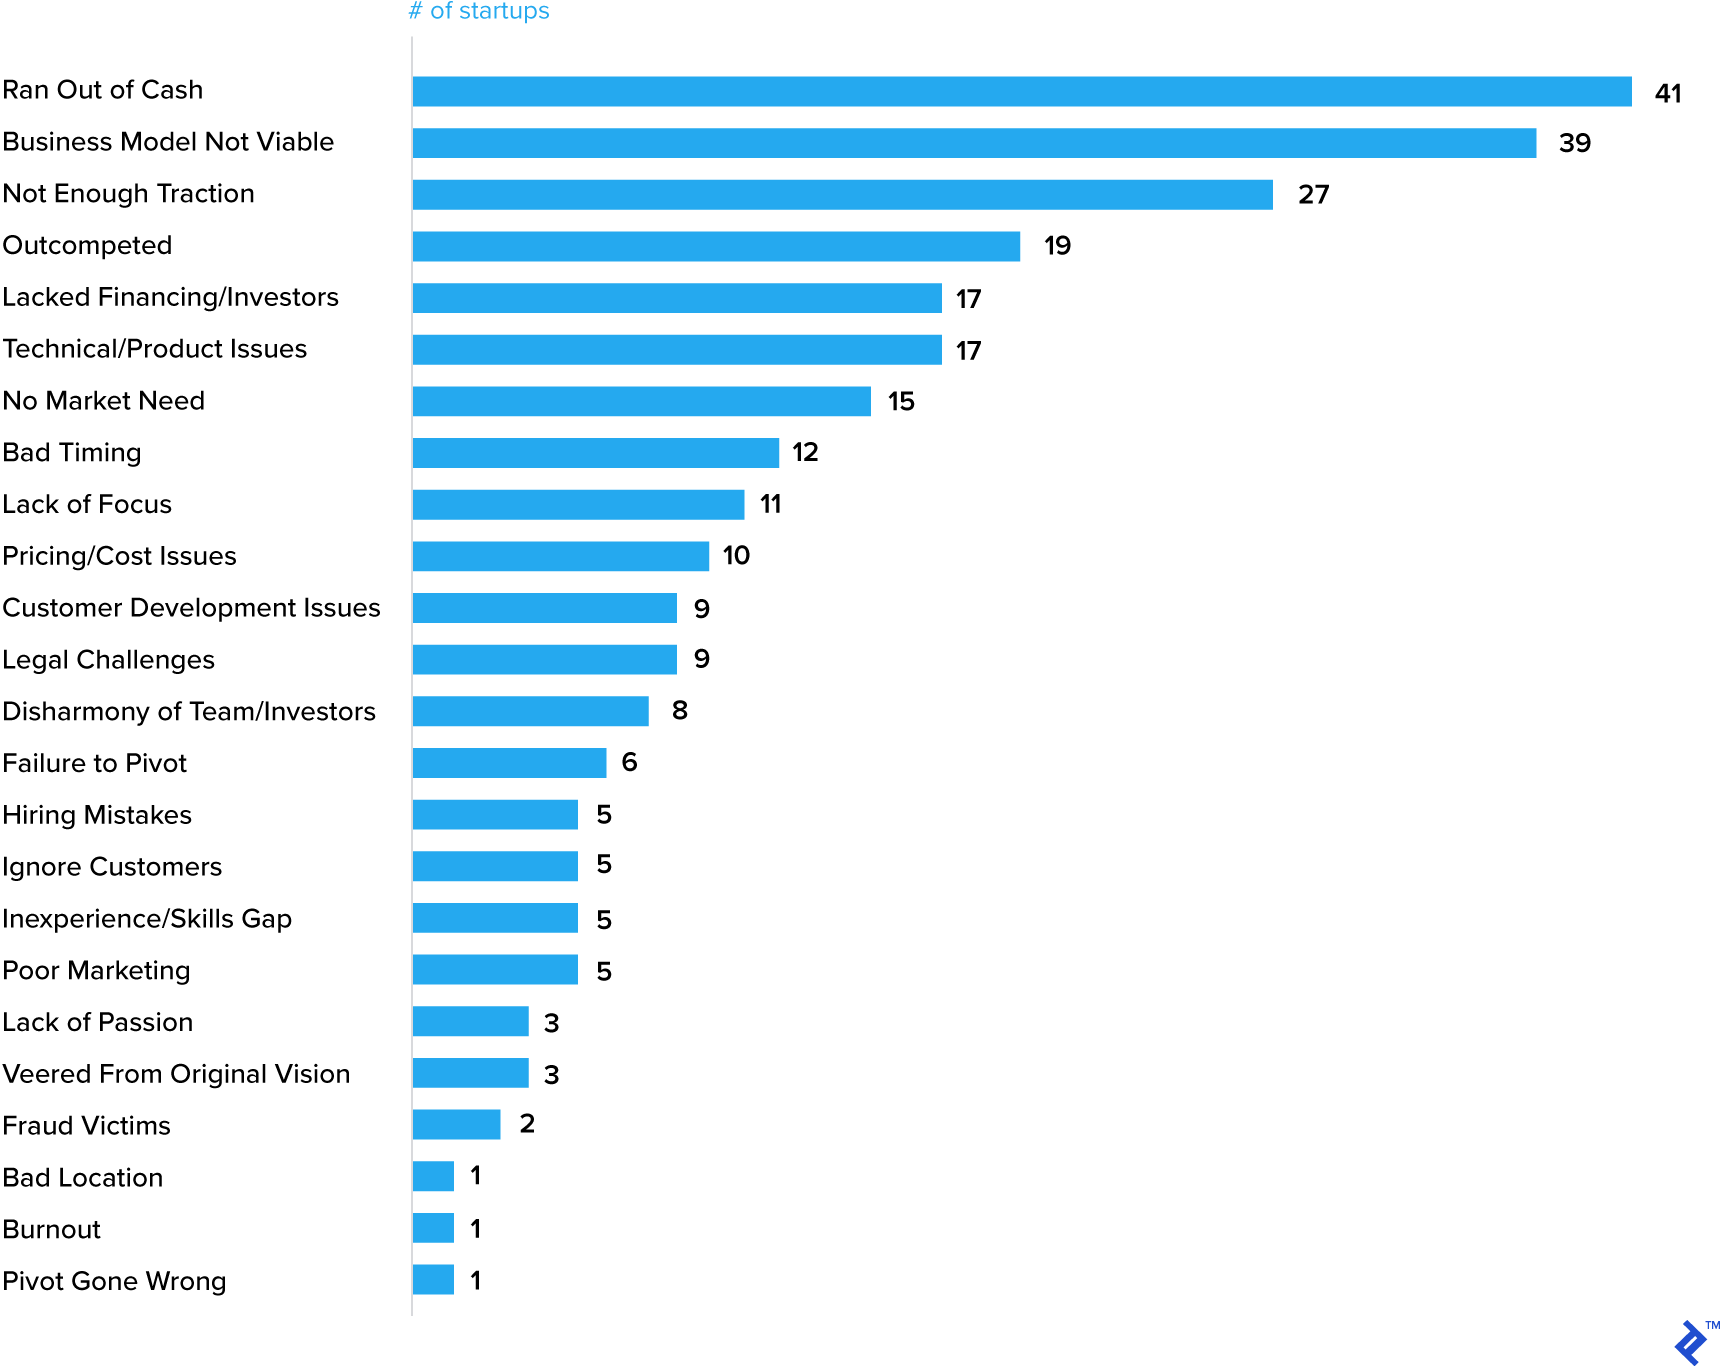 Top 20 Reasons Startups Fail - This shows the main reasons why startups fail, based on self-reported data, both in absolute numbers and percentages.